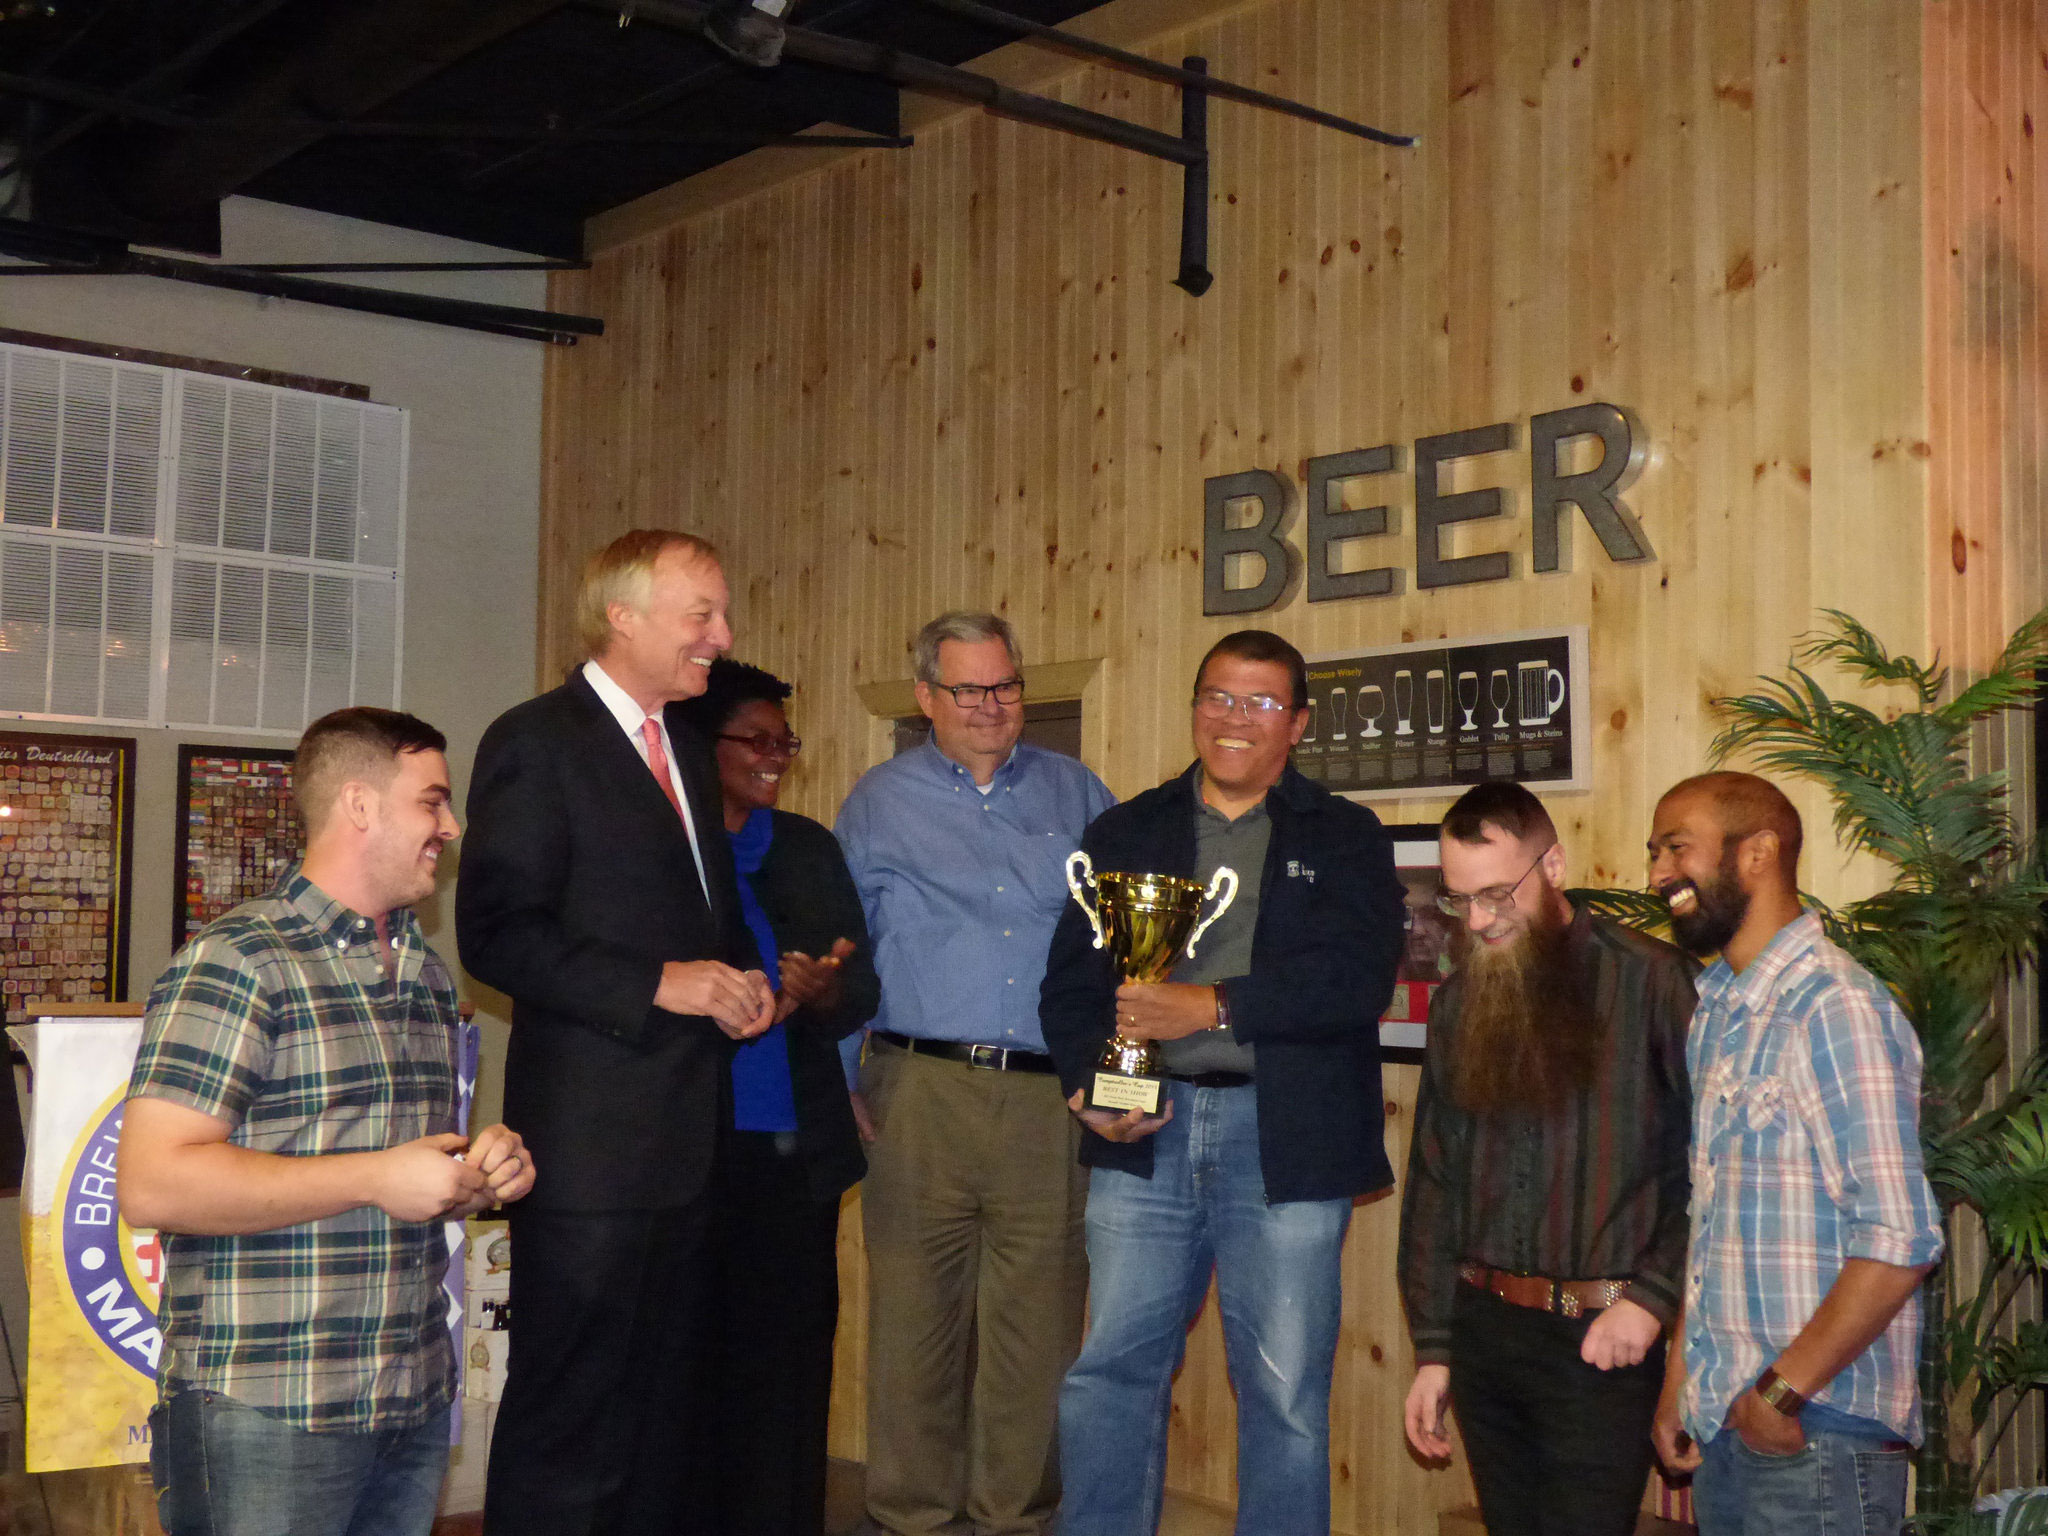 Franchot Presents Comptroller's Cup to Peabody Heights Brewery